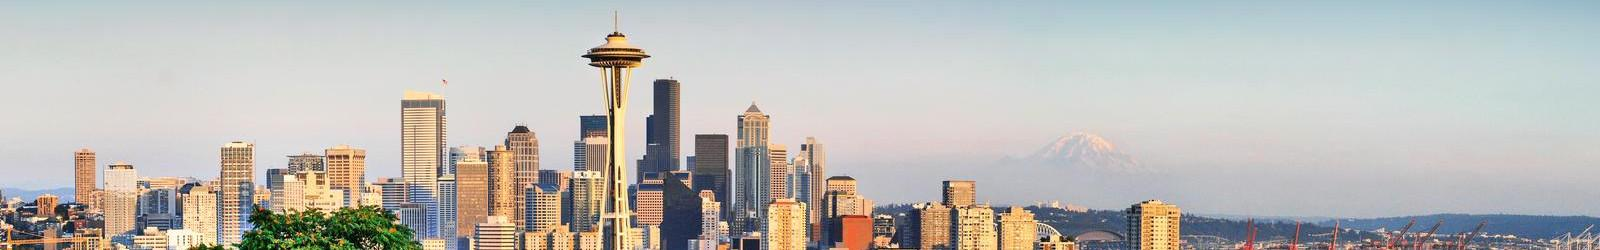 Career Counseling therapists in Seattle, Washington